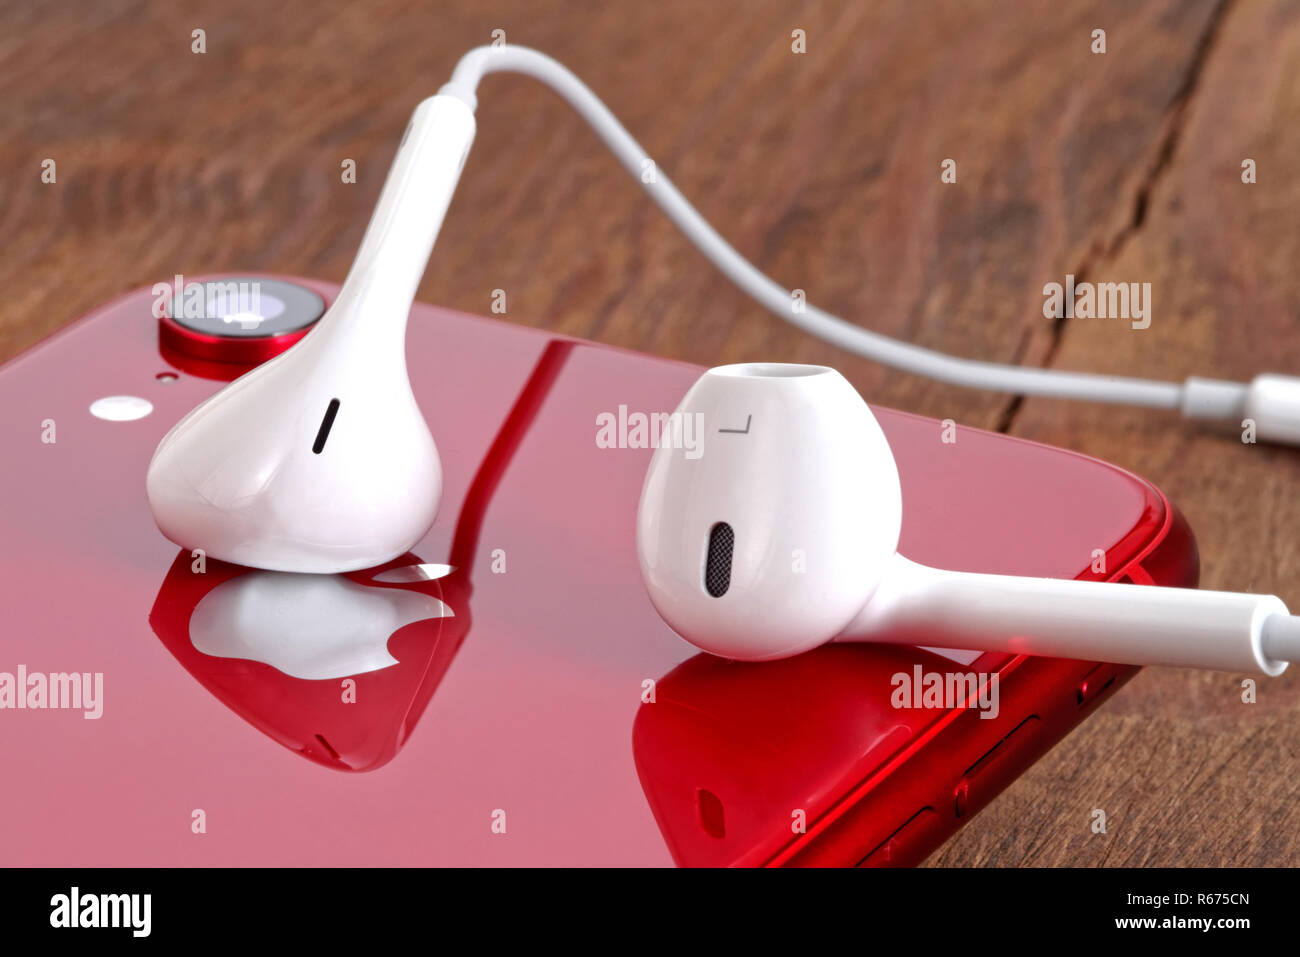 Koszalin, Poland – December 04, 2018: Red iPhone XR on a wooden table with white earphones. The iPhone XR is smart phone with multi touch screen produ Stock Photo